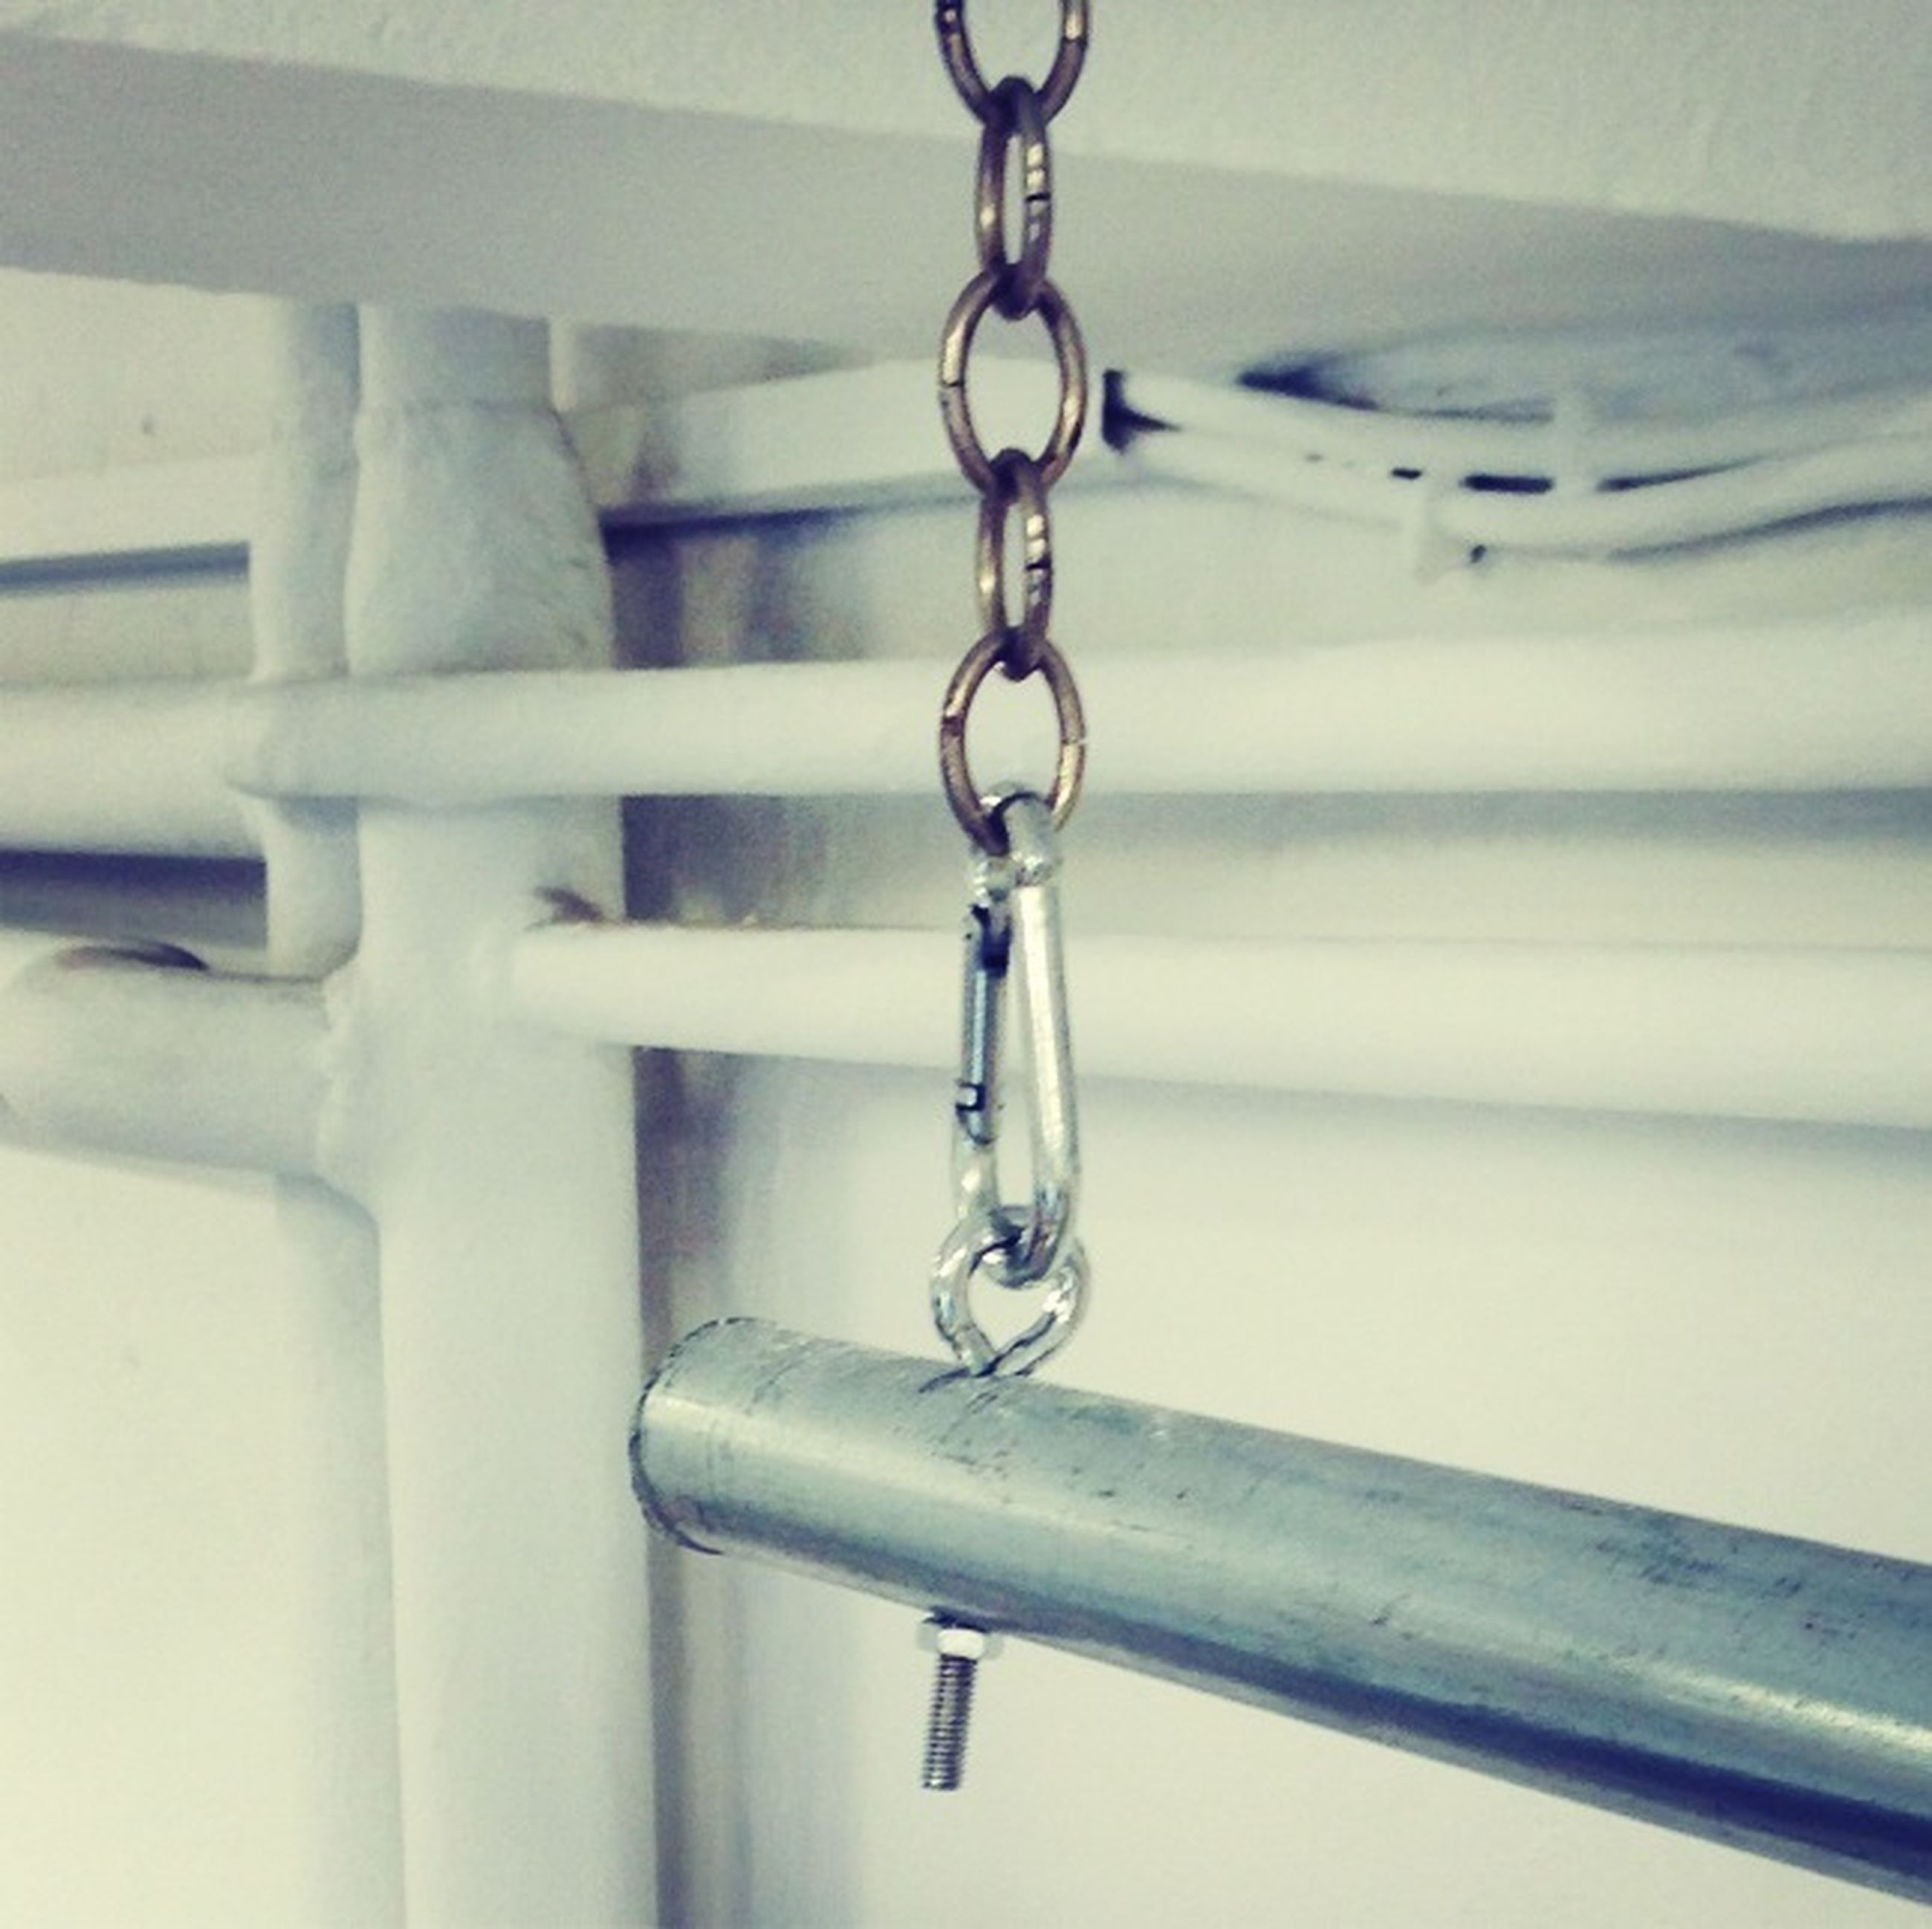 indoors, metal, close-up, metallic, focus on foreground, hanging, still life, no people, security, detail, shiny, safety, protection, part of, pattern, handle, wall - building feature, in a row, day, reflection